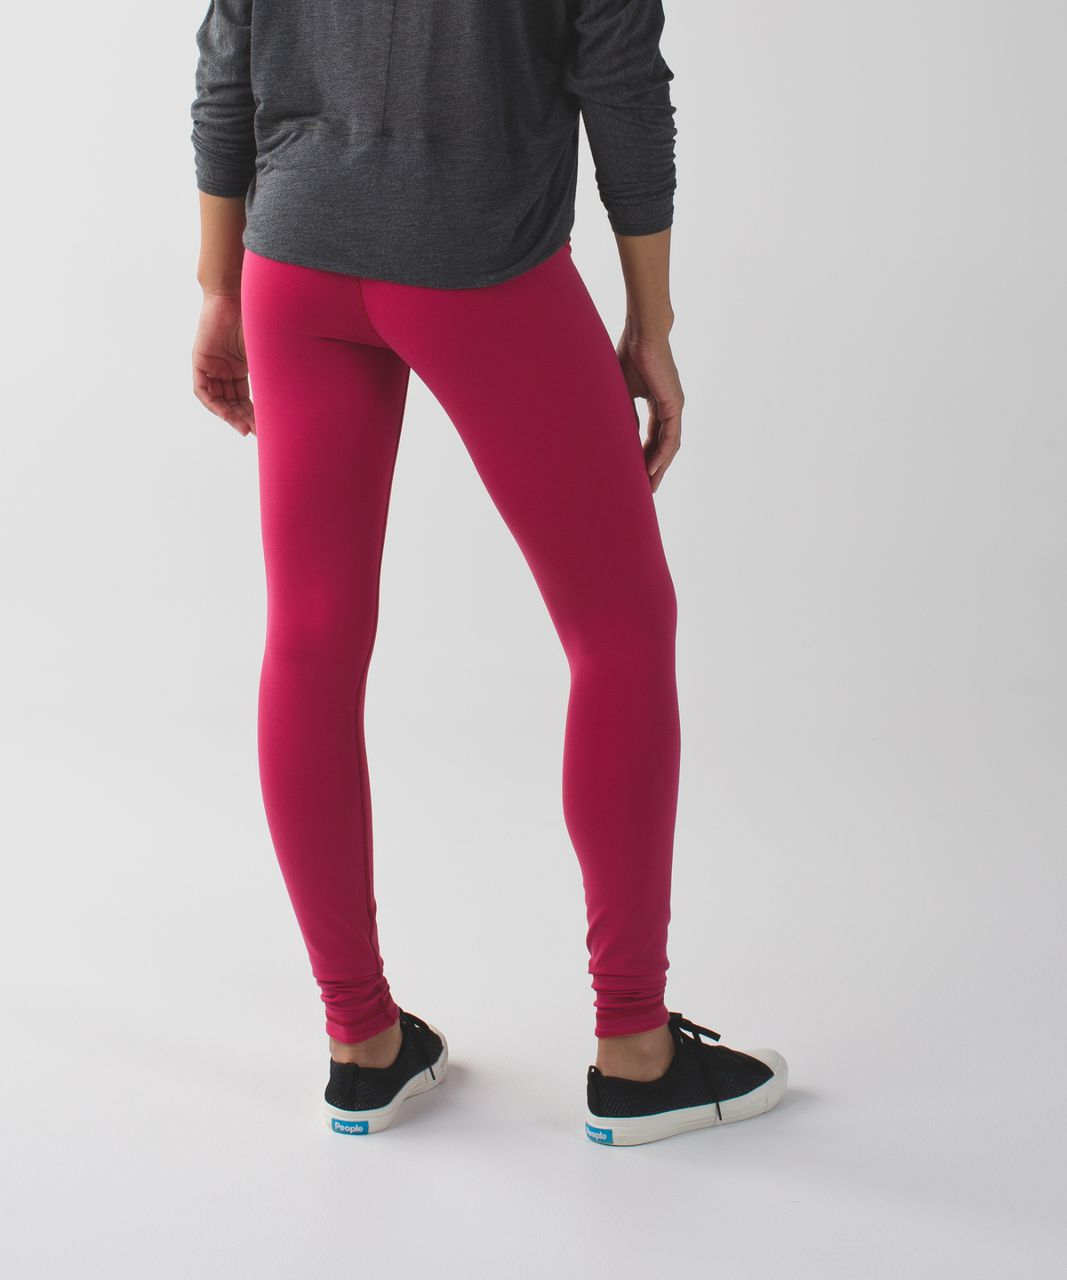 Lululemon Wunder Under Pant III (Reversible) - Cranberry / Alarming